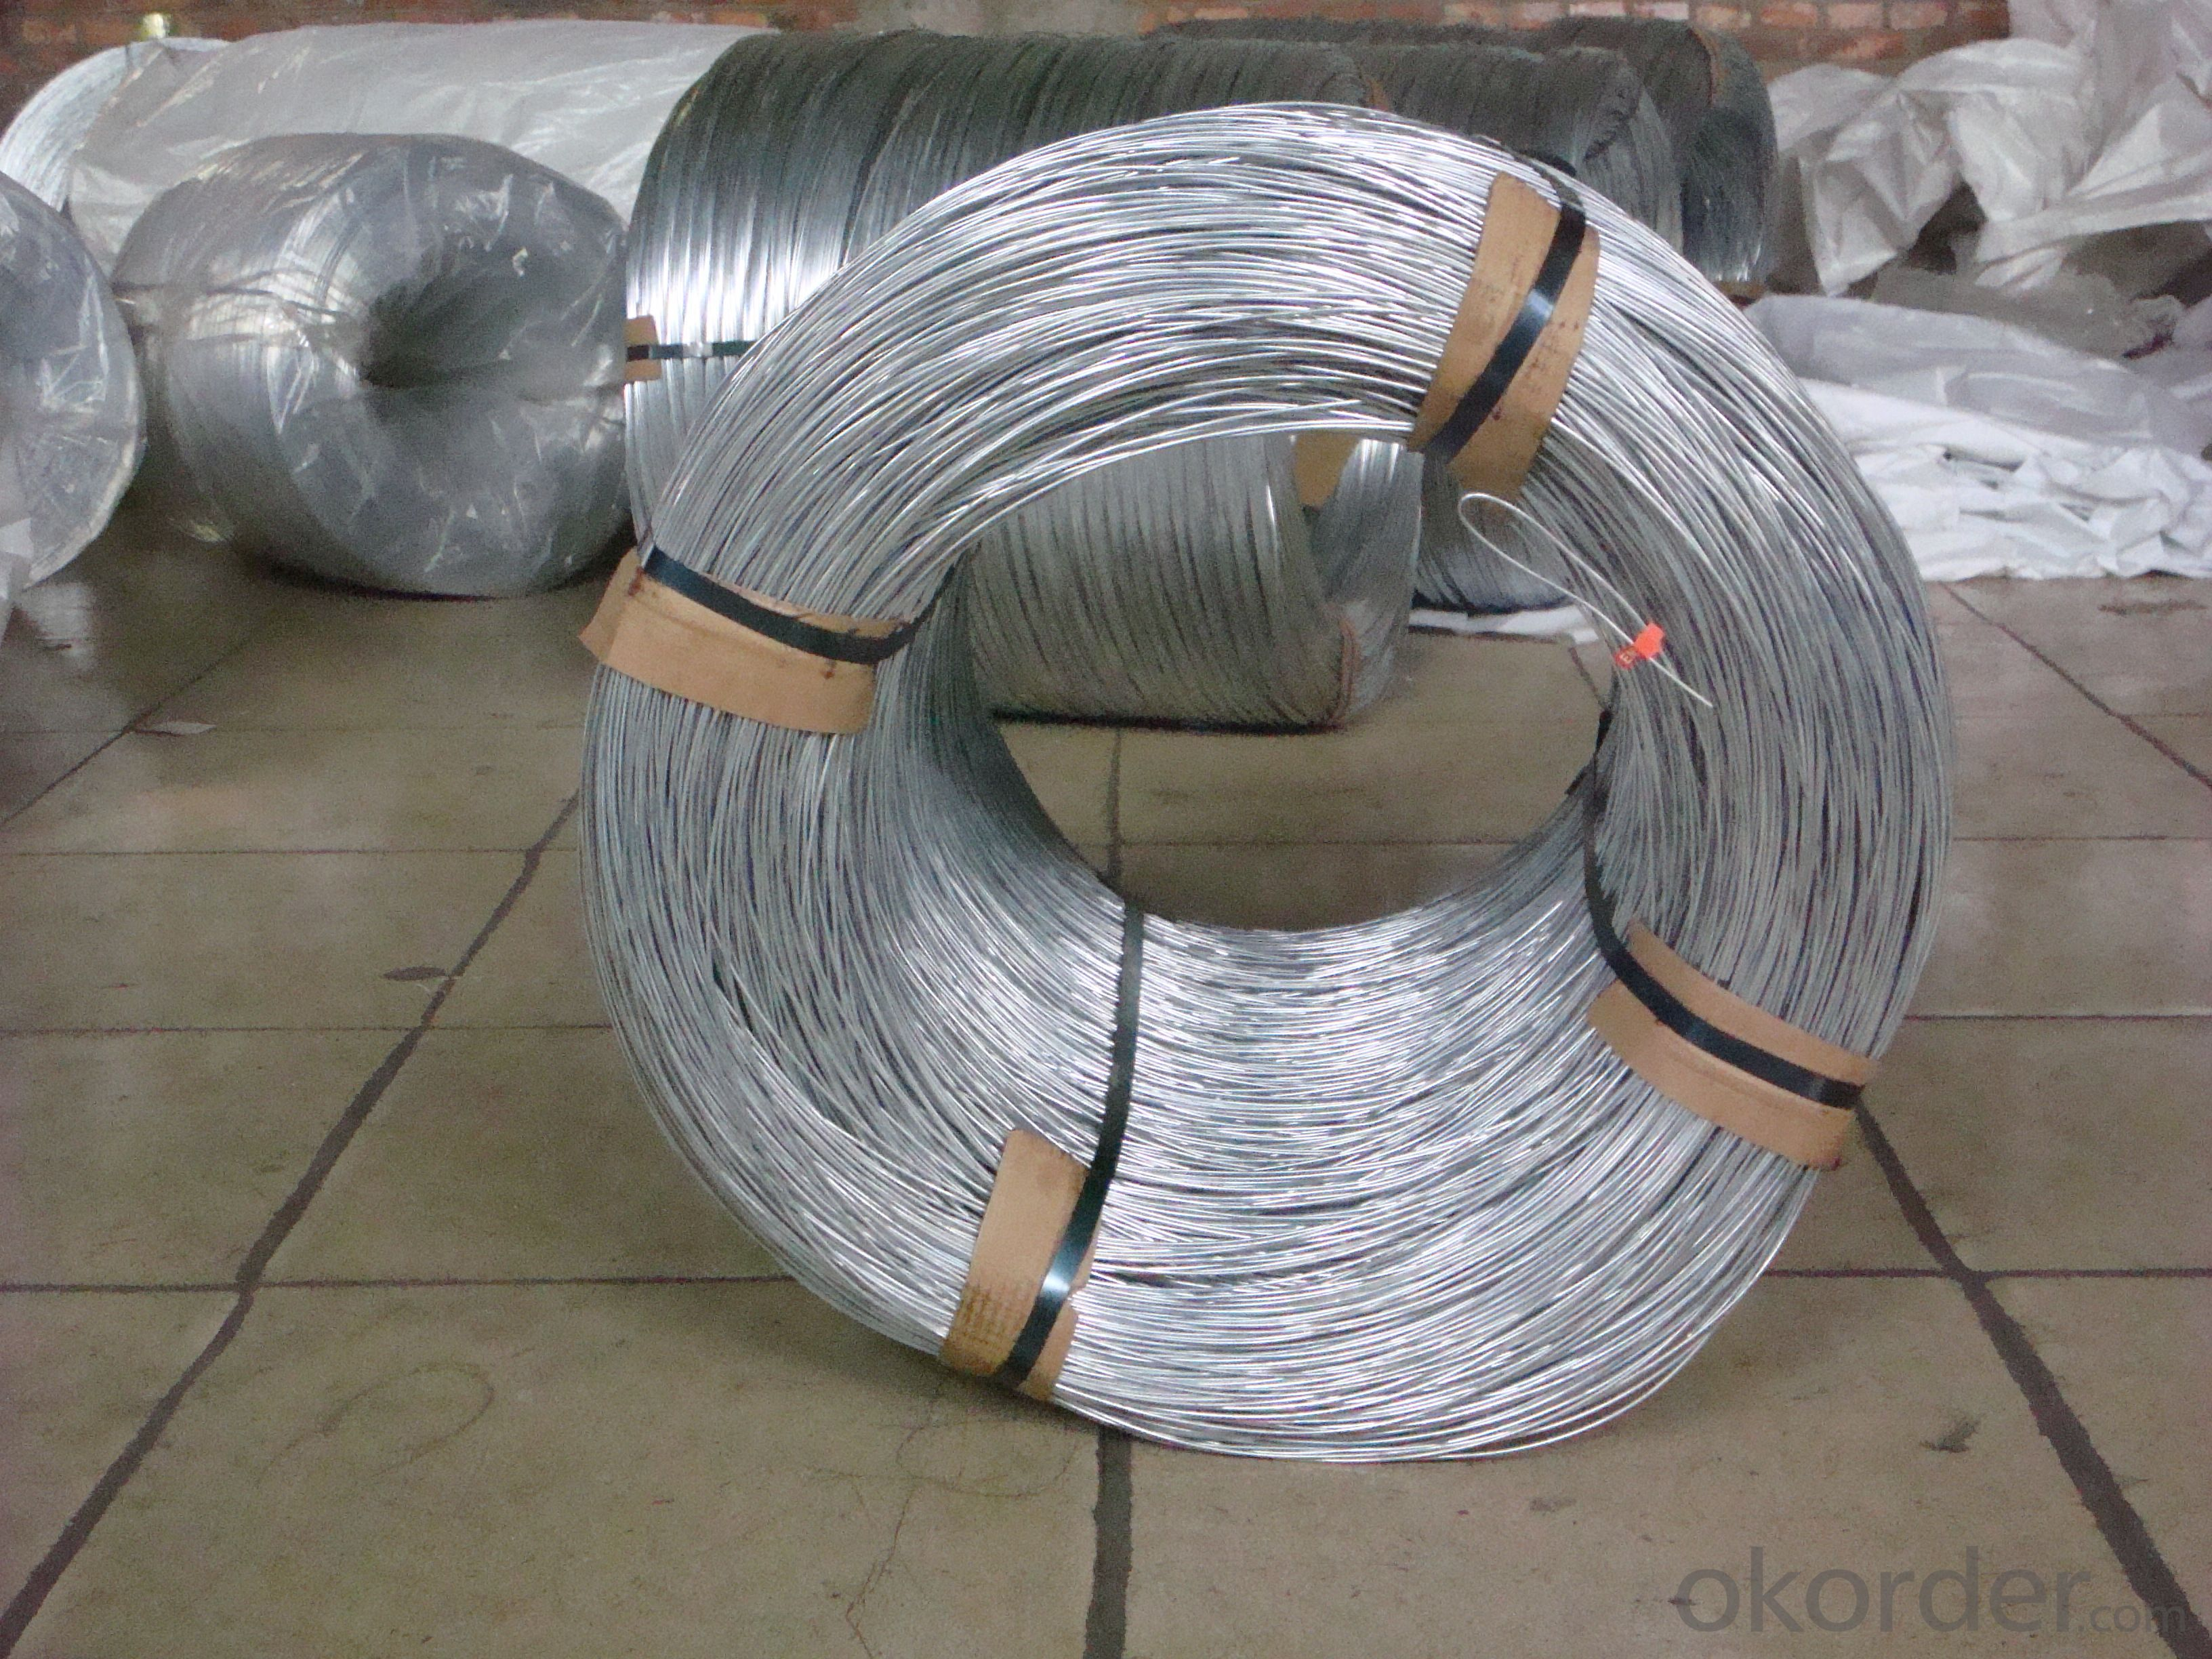 Galvanized 17 Gauge Electric Fence Wire Spool Wires